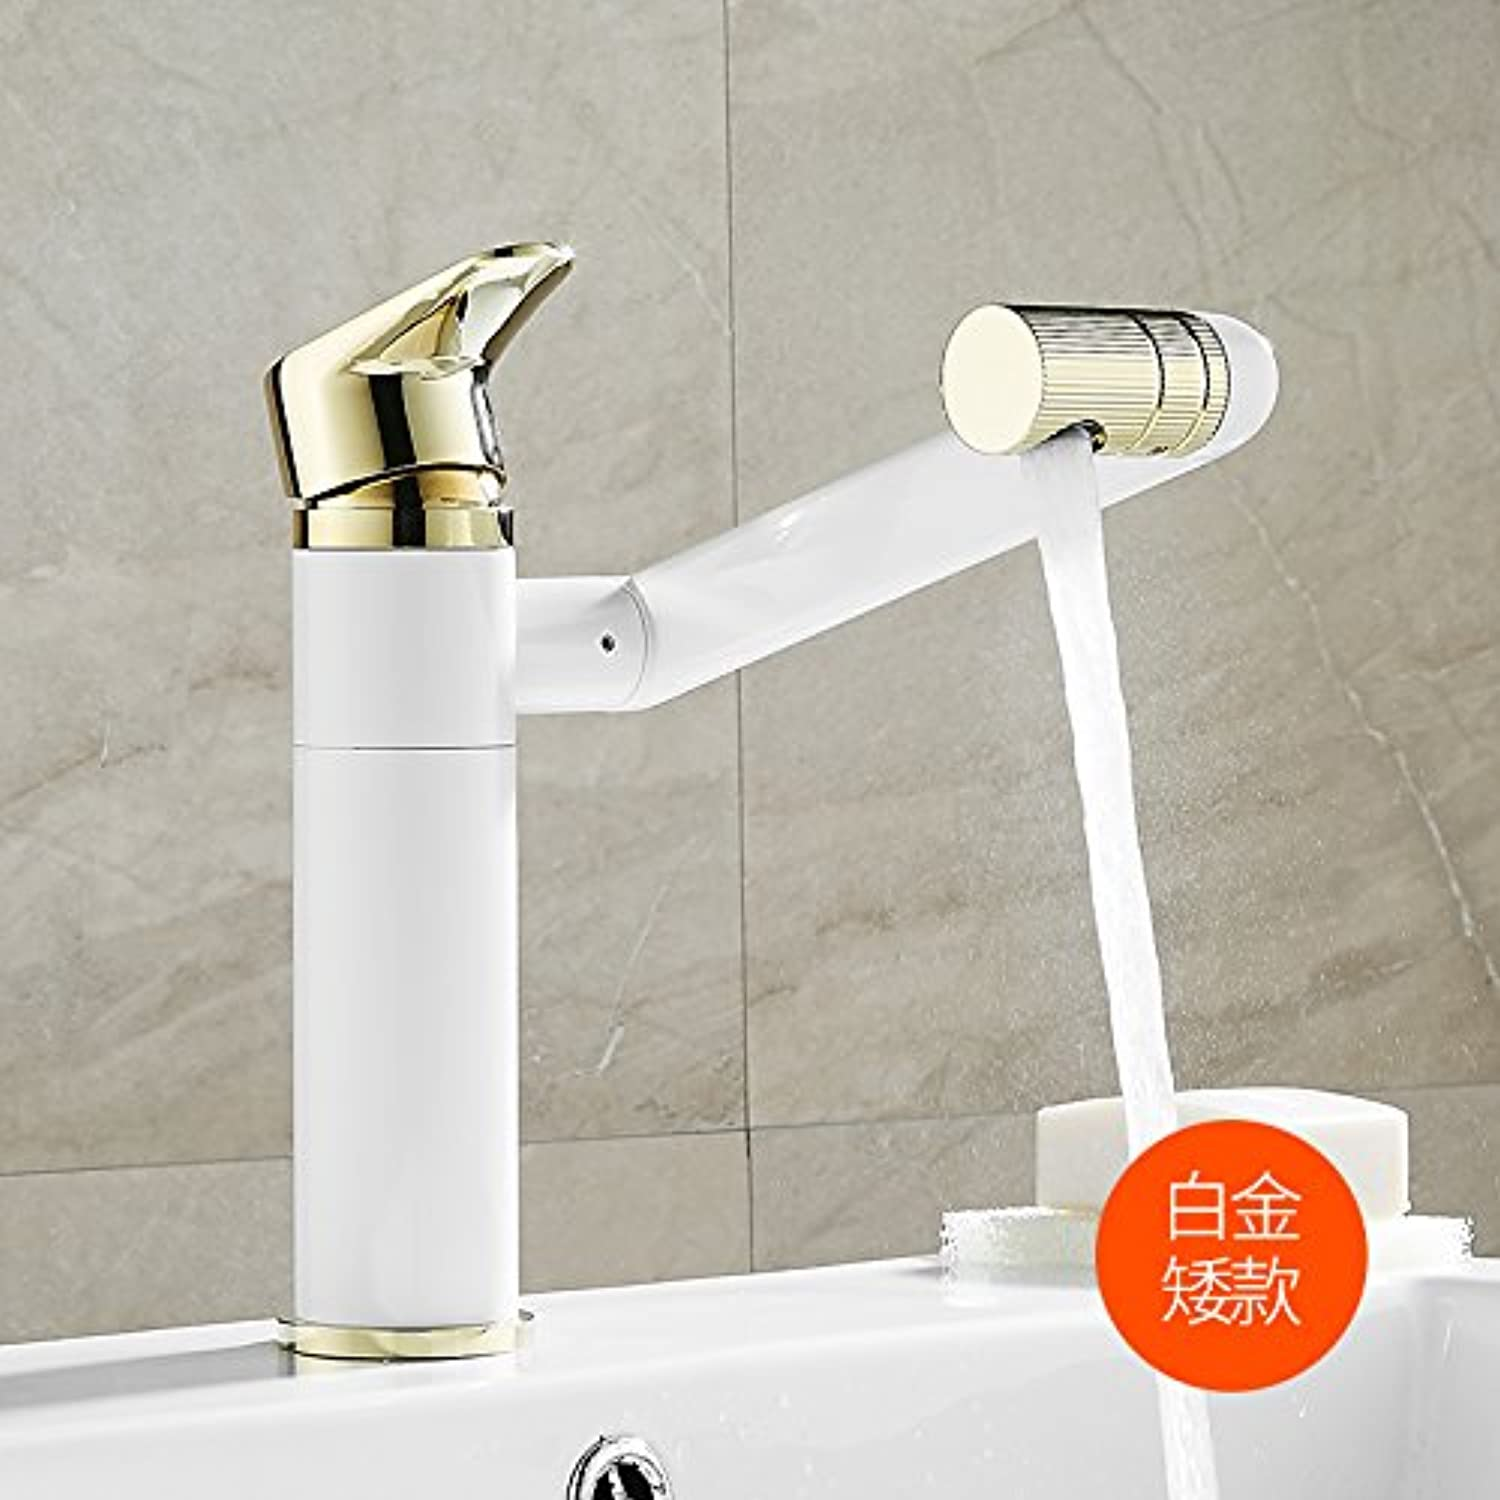 JWLT All copper body pull faucet basin, water faucet, hot and cold basin, wash basin, hand basin, lifting and washing,Fortune Cat basin faucet standard white -4 days shipped